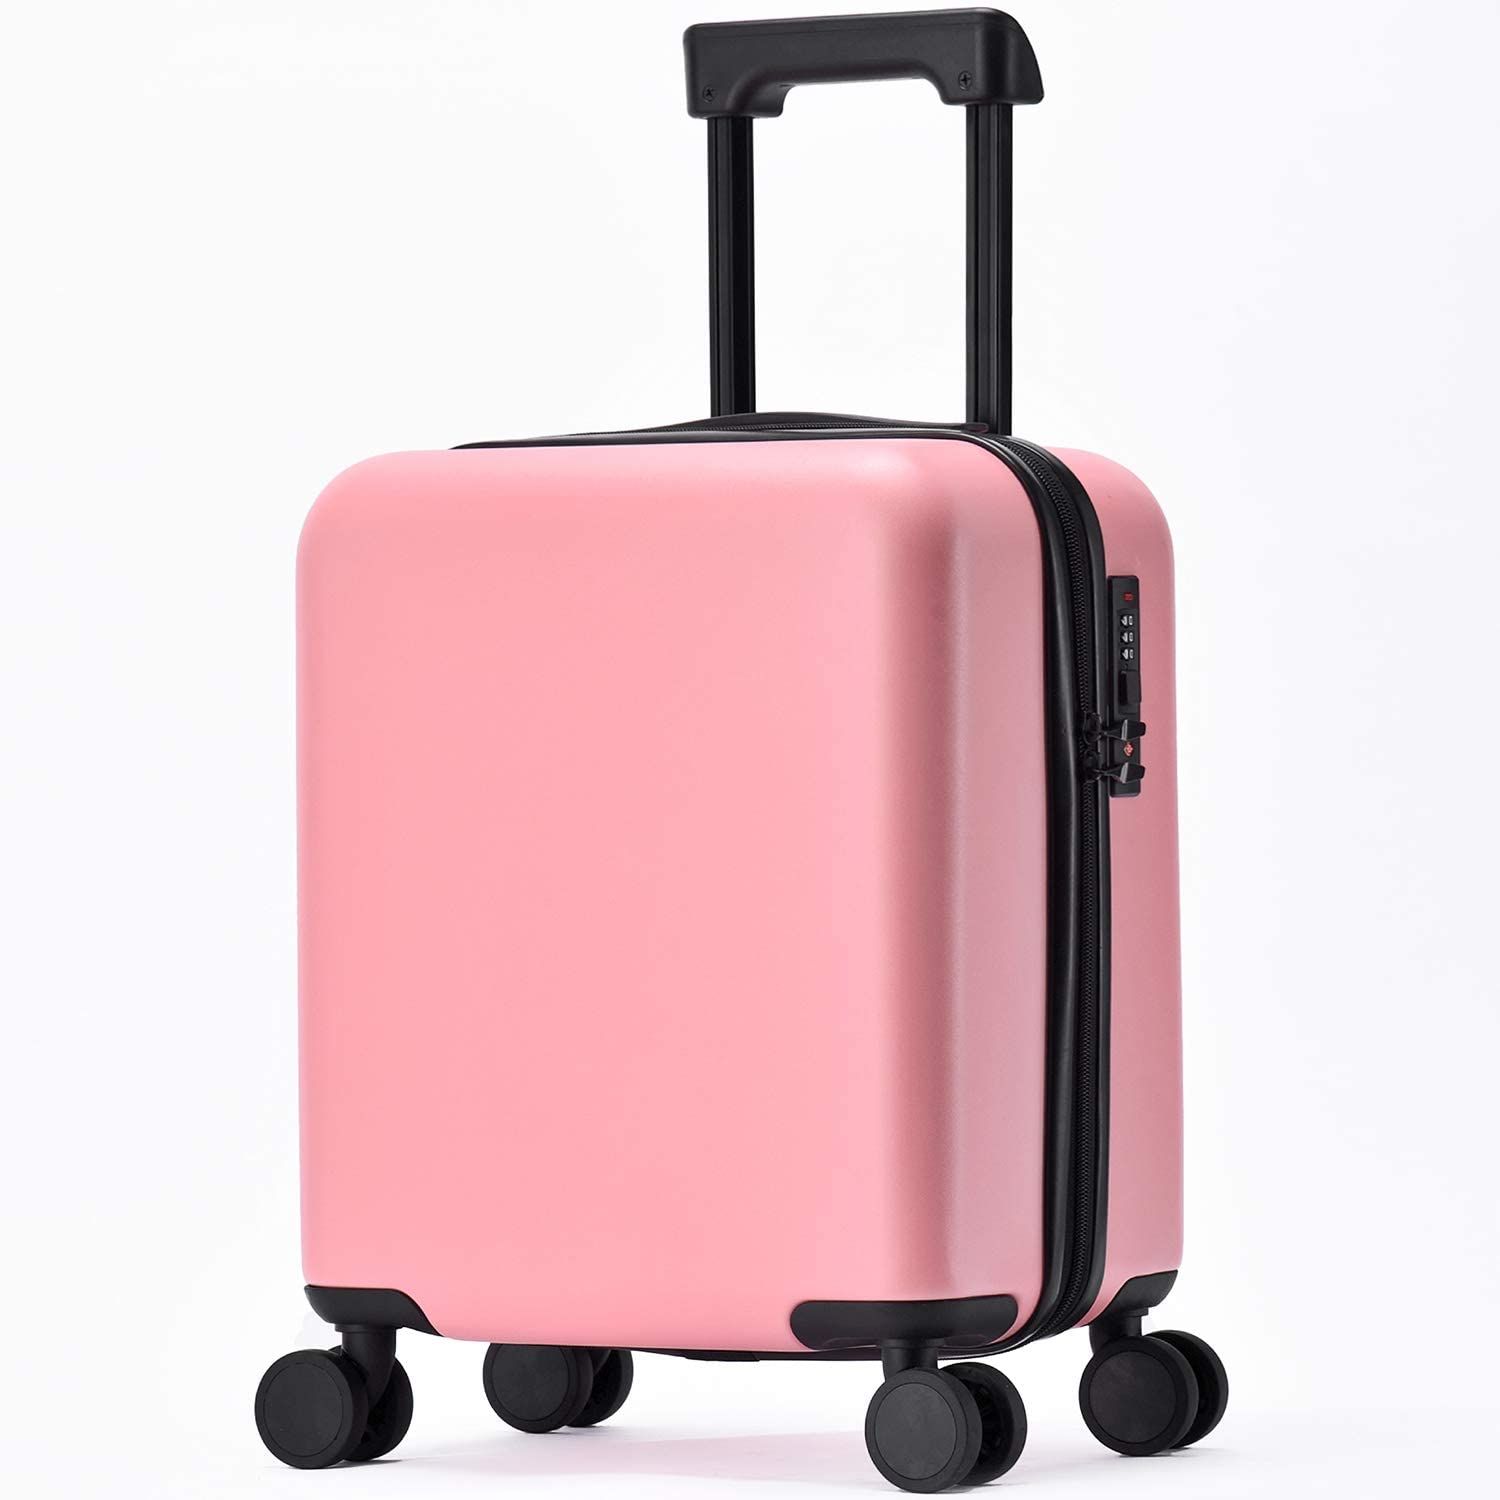 GURHODVO Kids Luggage with Wheels Carry On Children Rolling Suitcase for Travel Pure Color (pink)